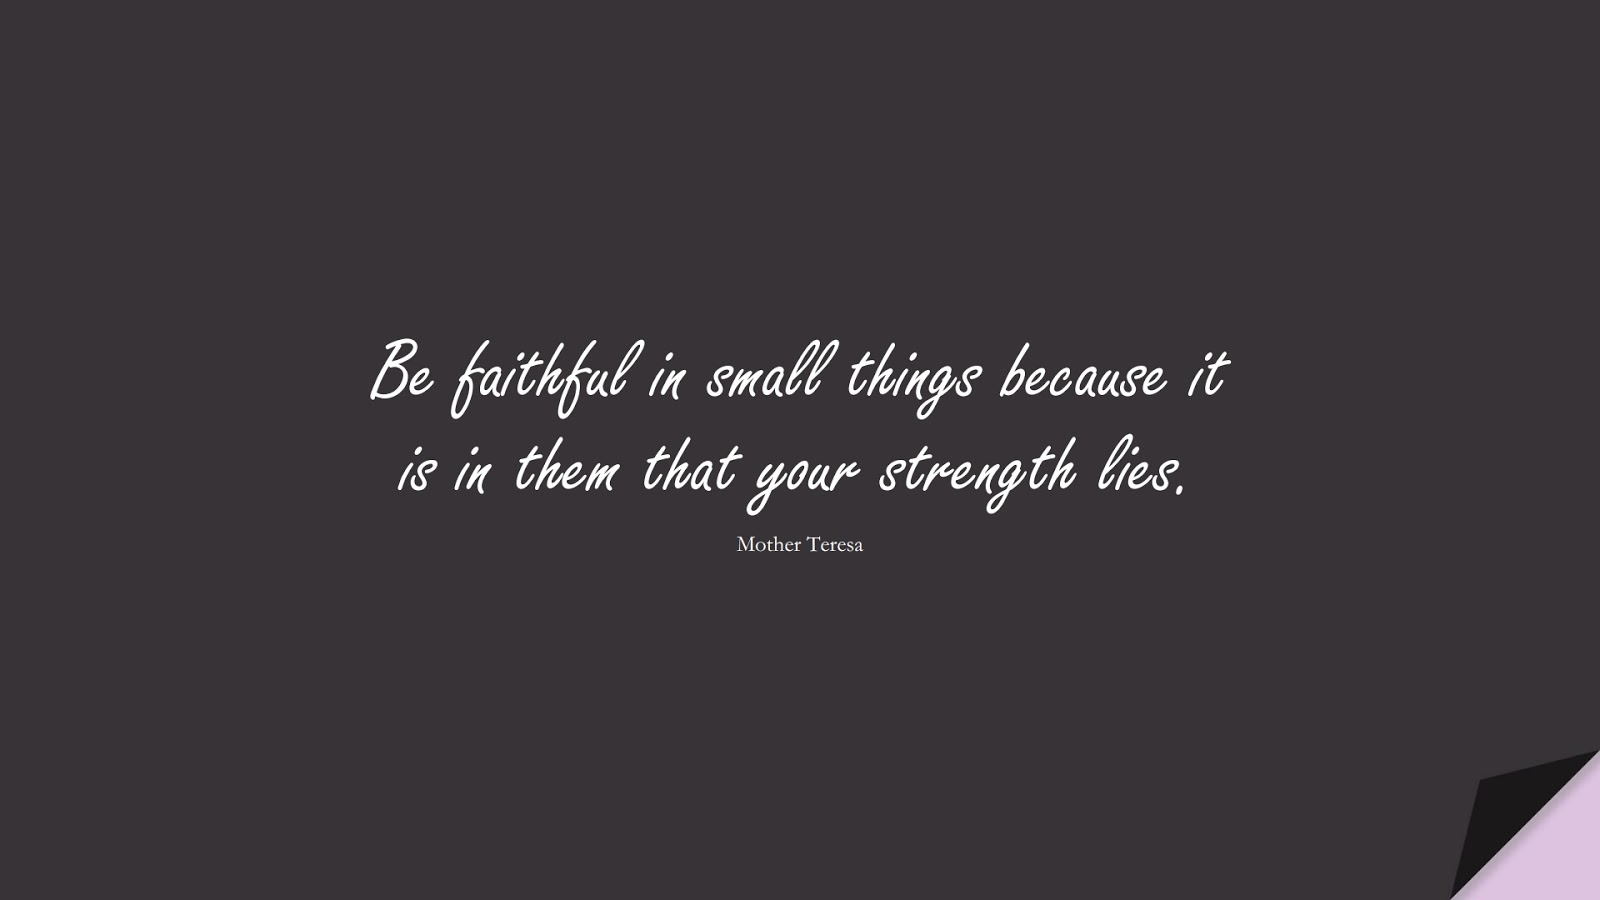 Be faithful in small things because it is in them that your strength lies. (Mother Teresa);  #ShortQuotes